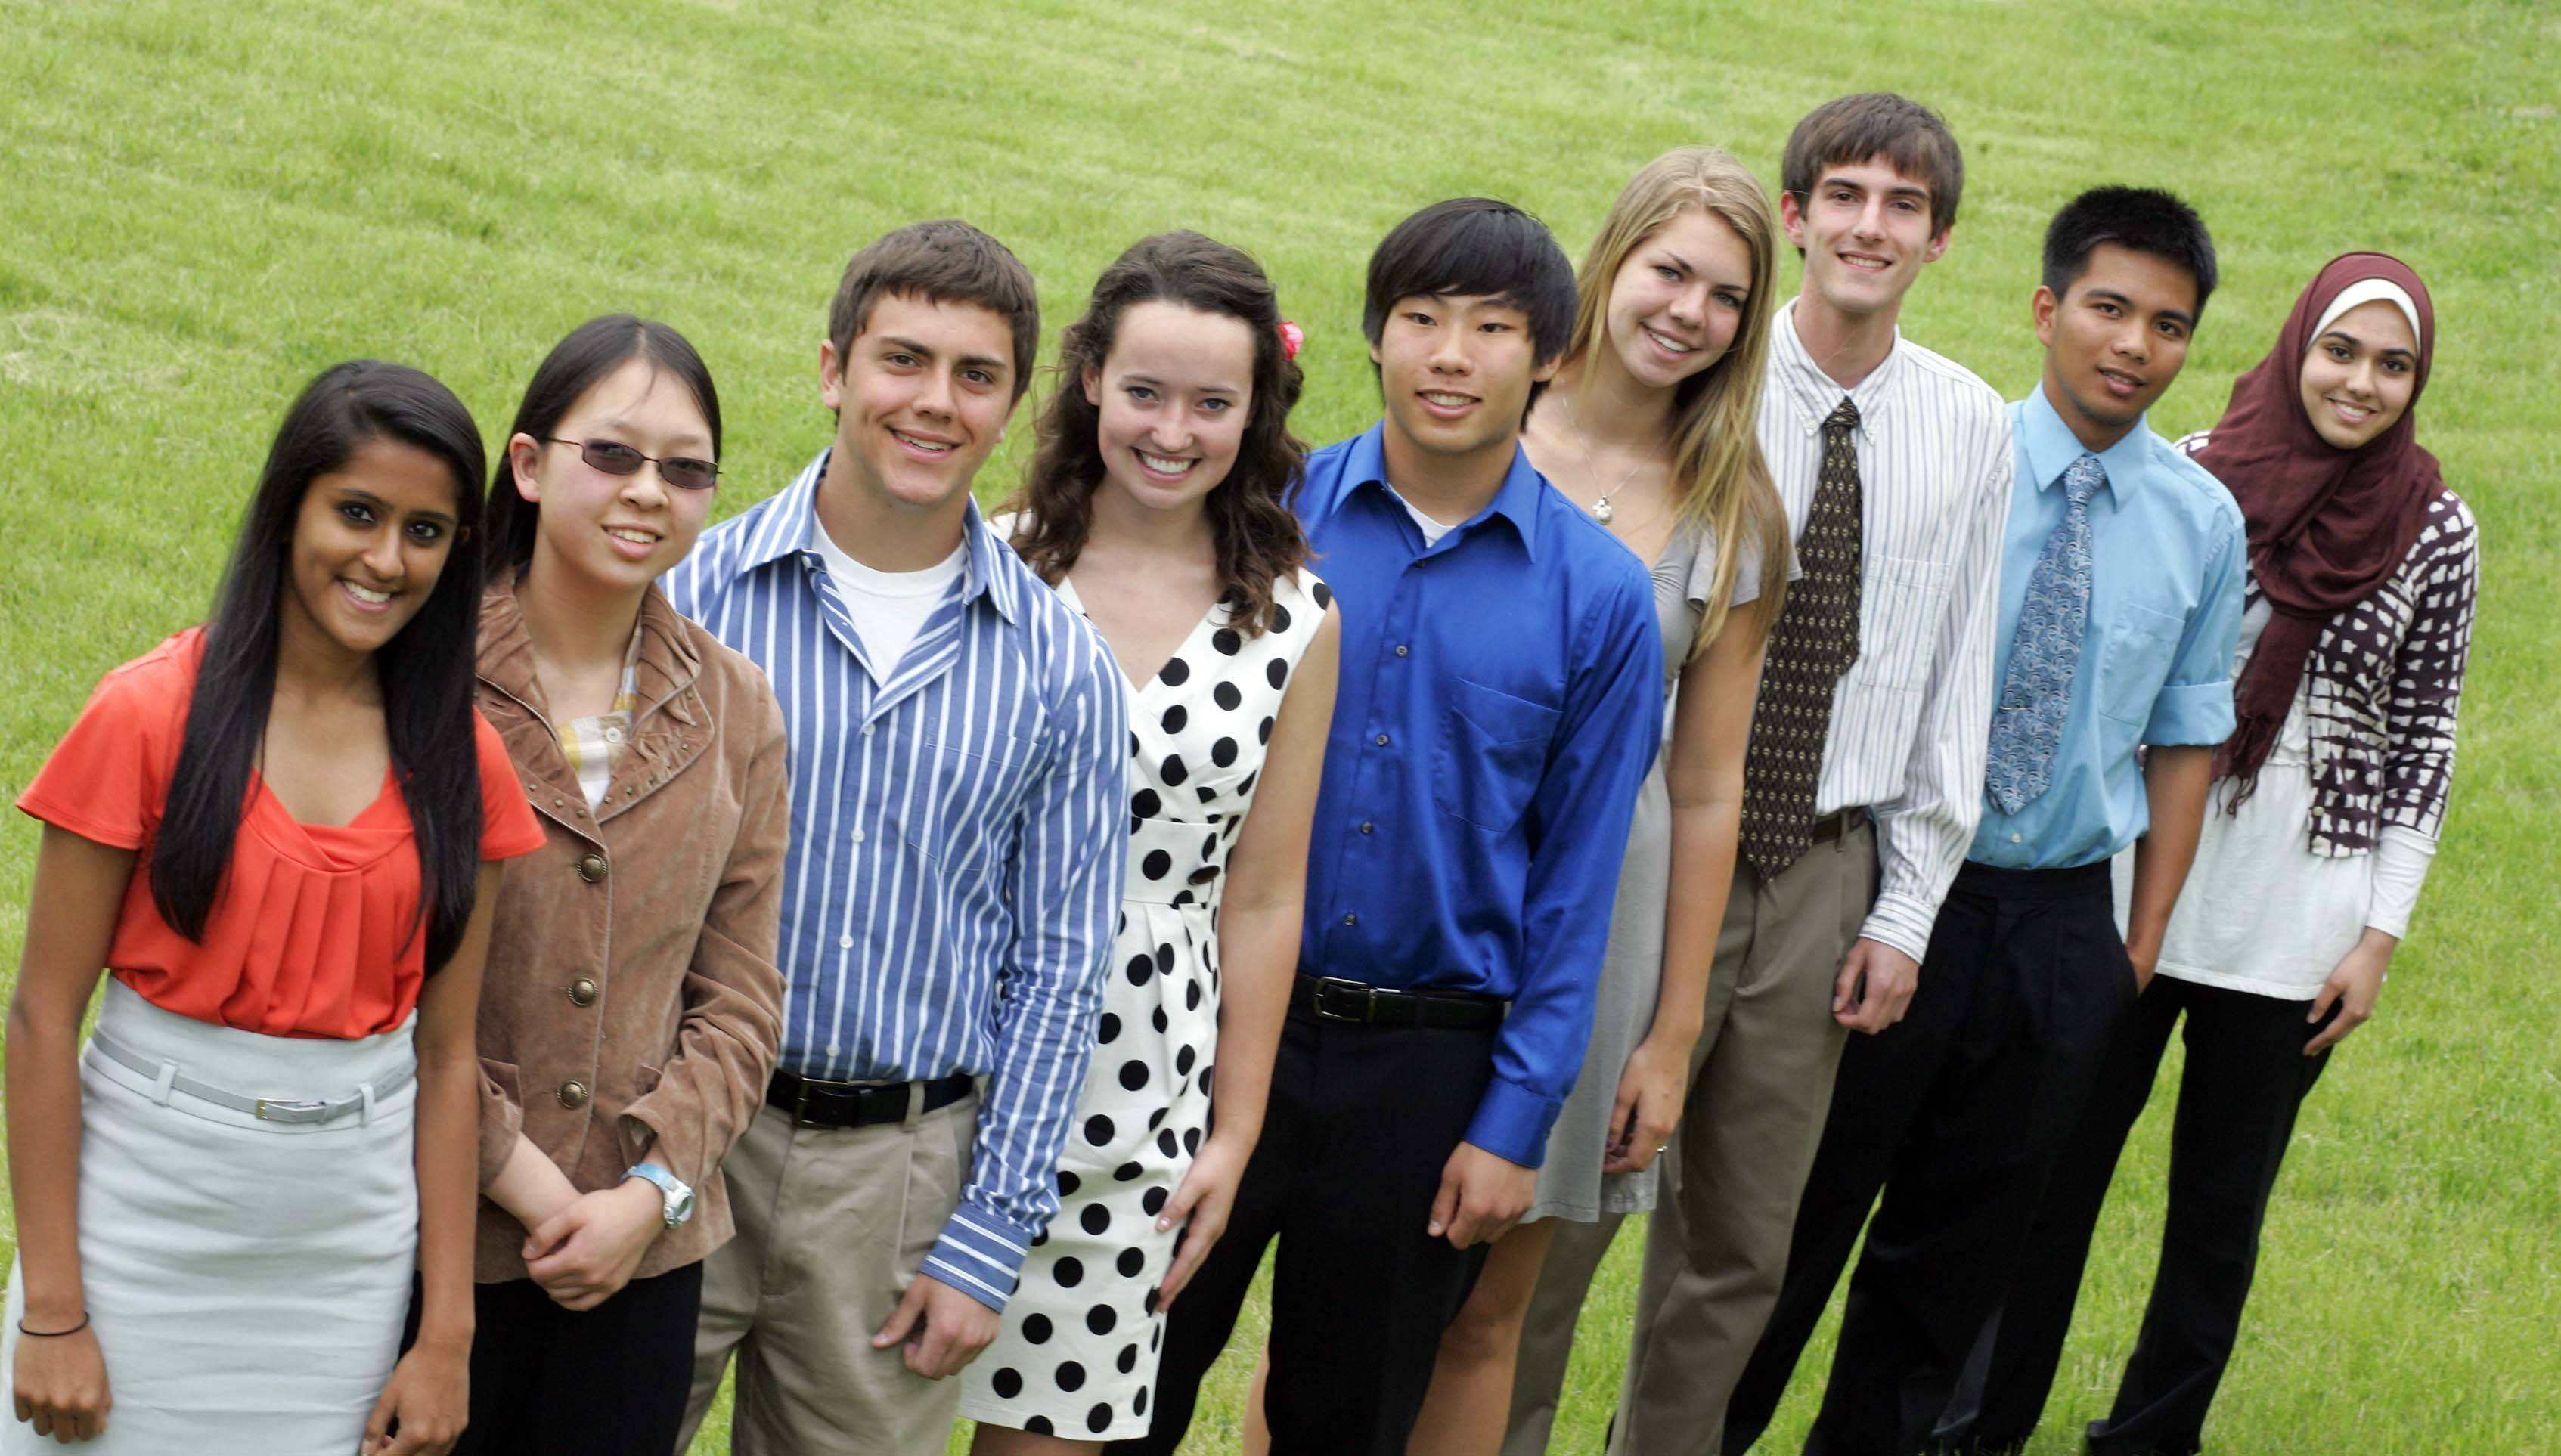 The 2010-11 Fox Valley Academic Team, from left: Riti Chokshi, Elgin High School; Stephanie Cheng, Illinois Math and Science Academy; Jake Surges, Jacobs High School; Caitlin Ward, Elgin Academy; Paul Yuan, Illinois Math and Science Academy; Megan McFarland, Batavia High School; Paul Jerger, Central High School (Burlington); A.G. Navarro, Huntley High School; and Fakhra Ahmad, Elgin High School. Not pictured: Collin Waldoch, Geneva High School.